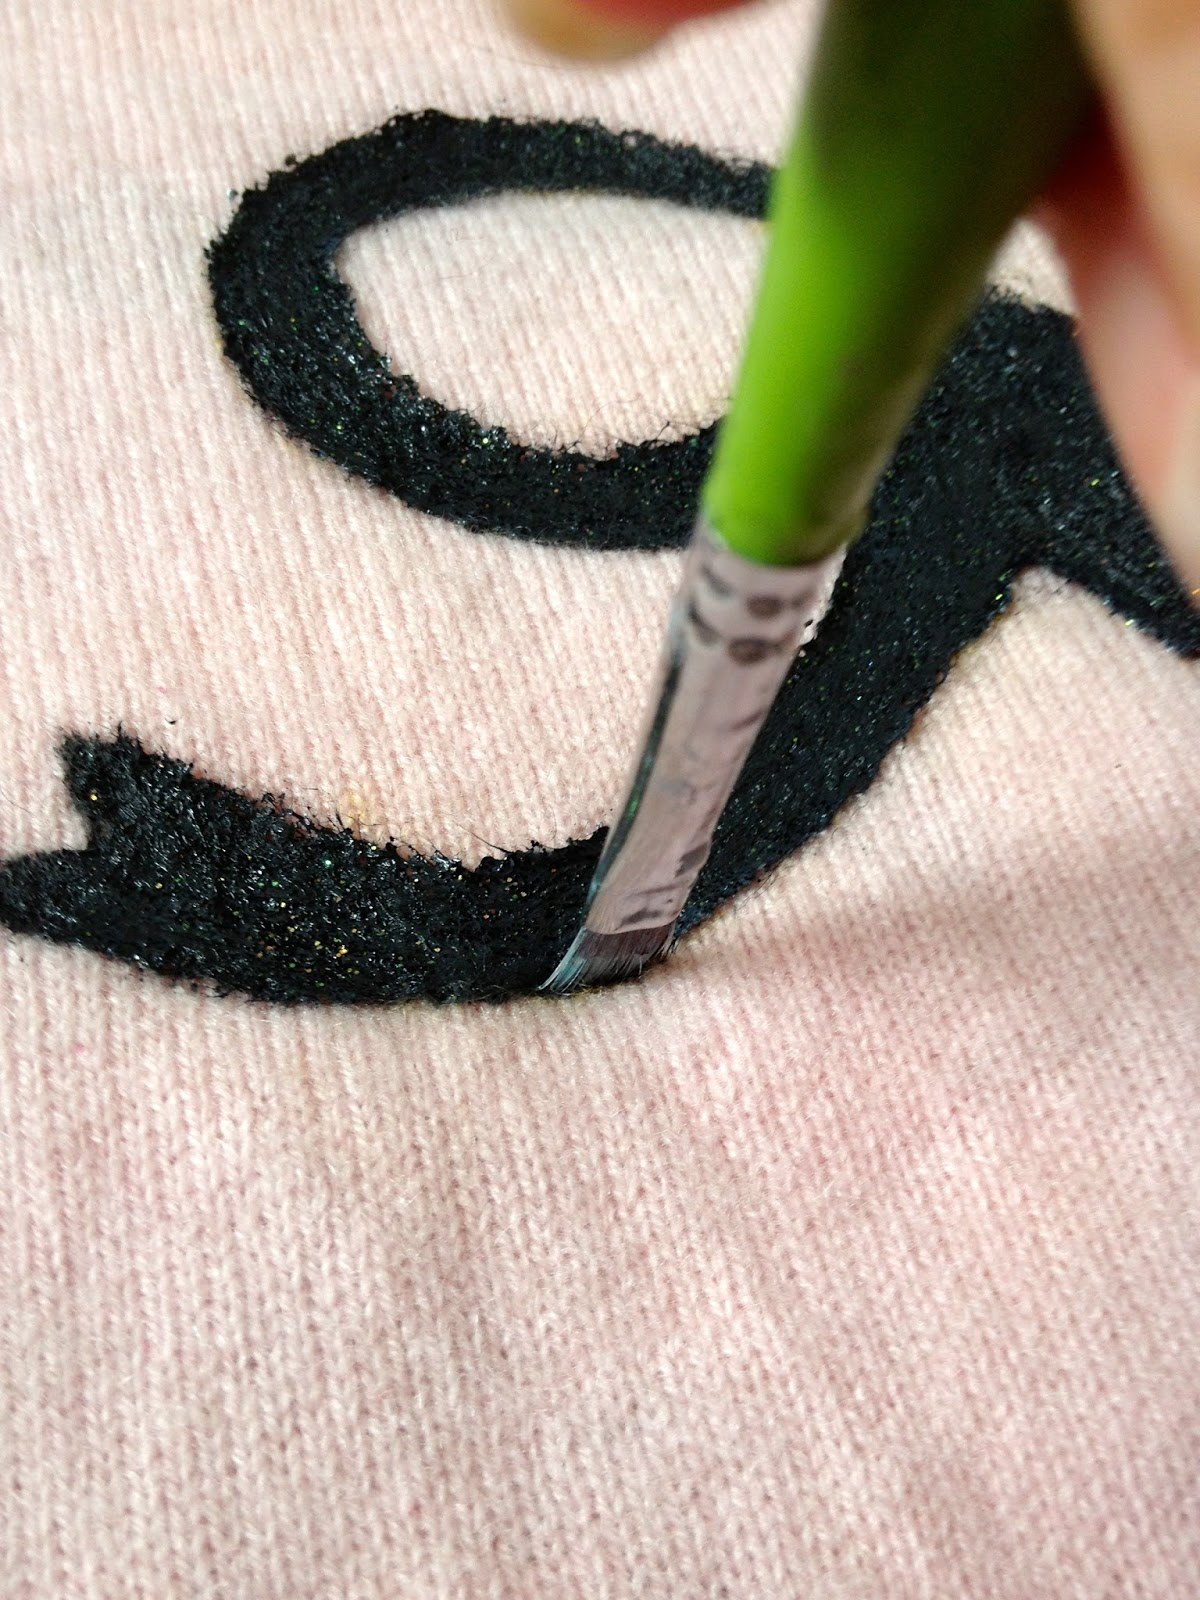 la vie DIY: Can You Paint on Sweaters? Should You?